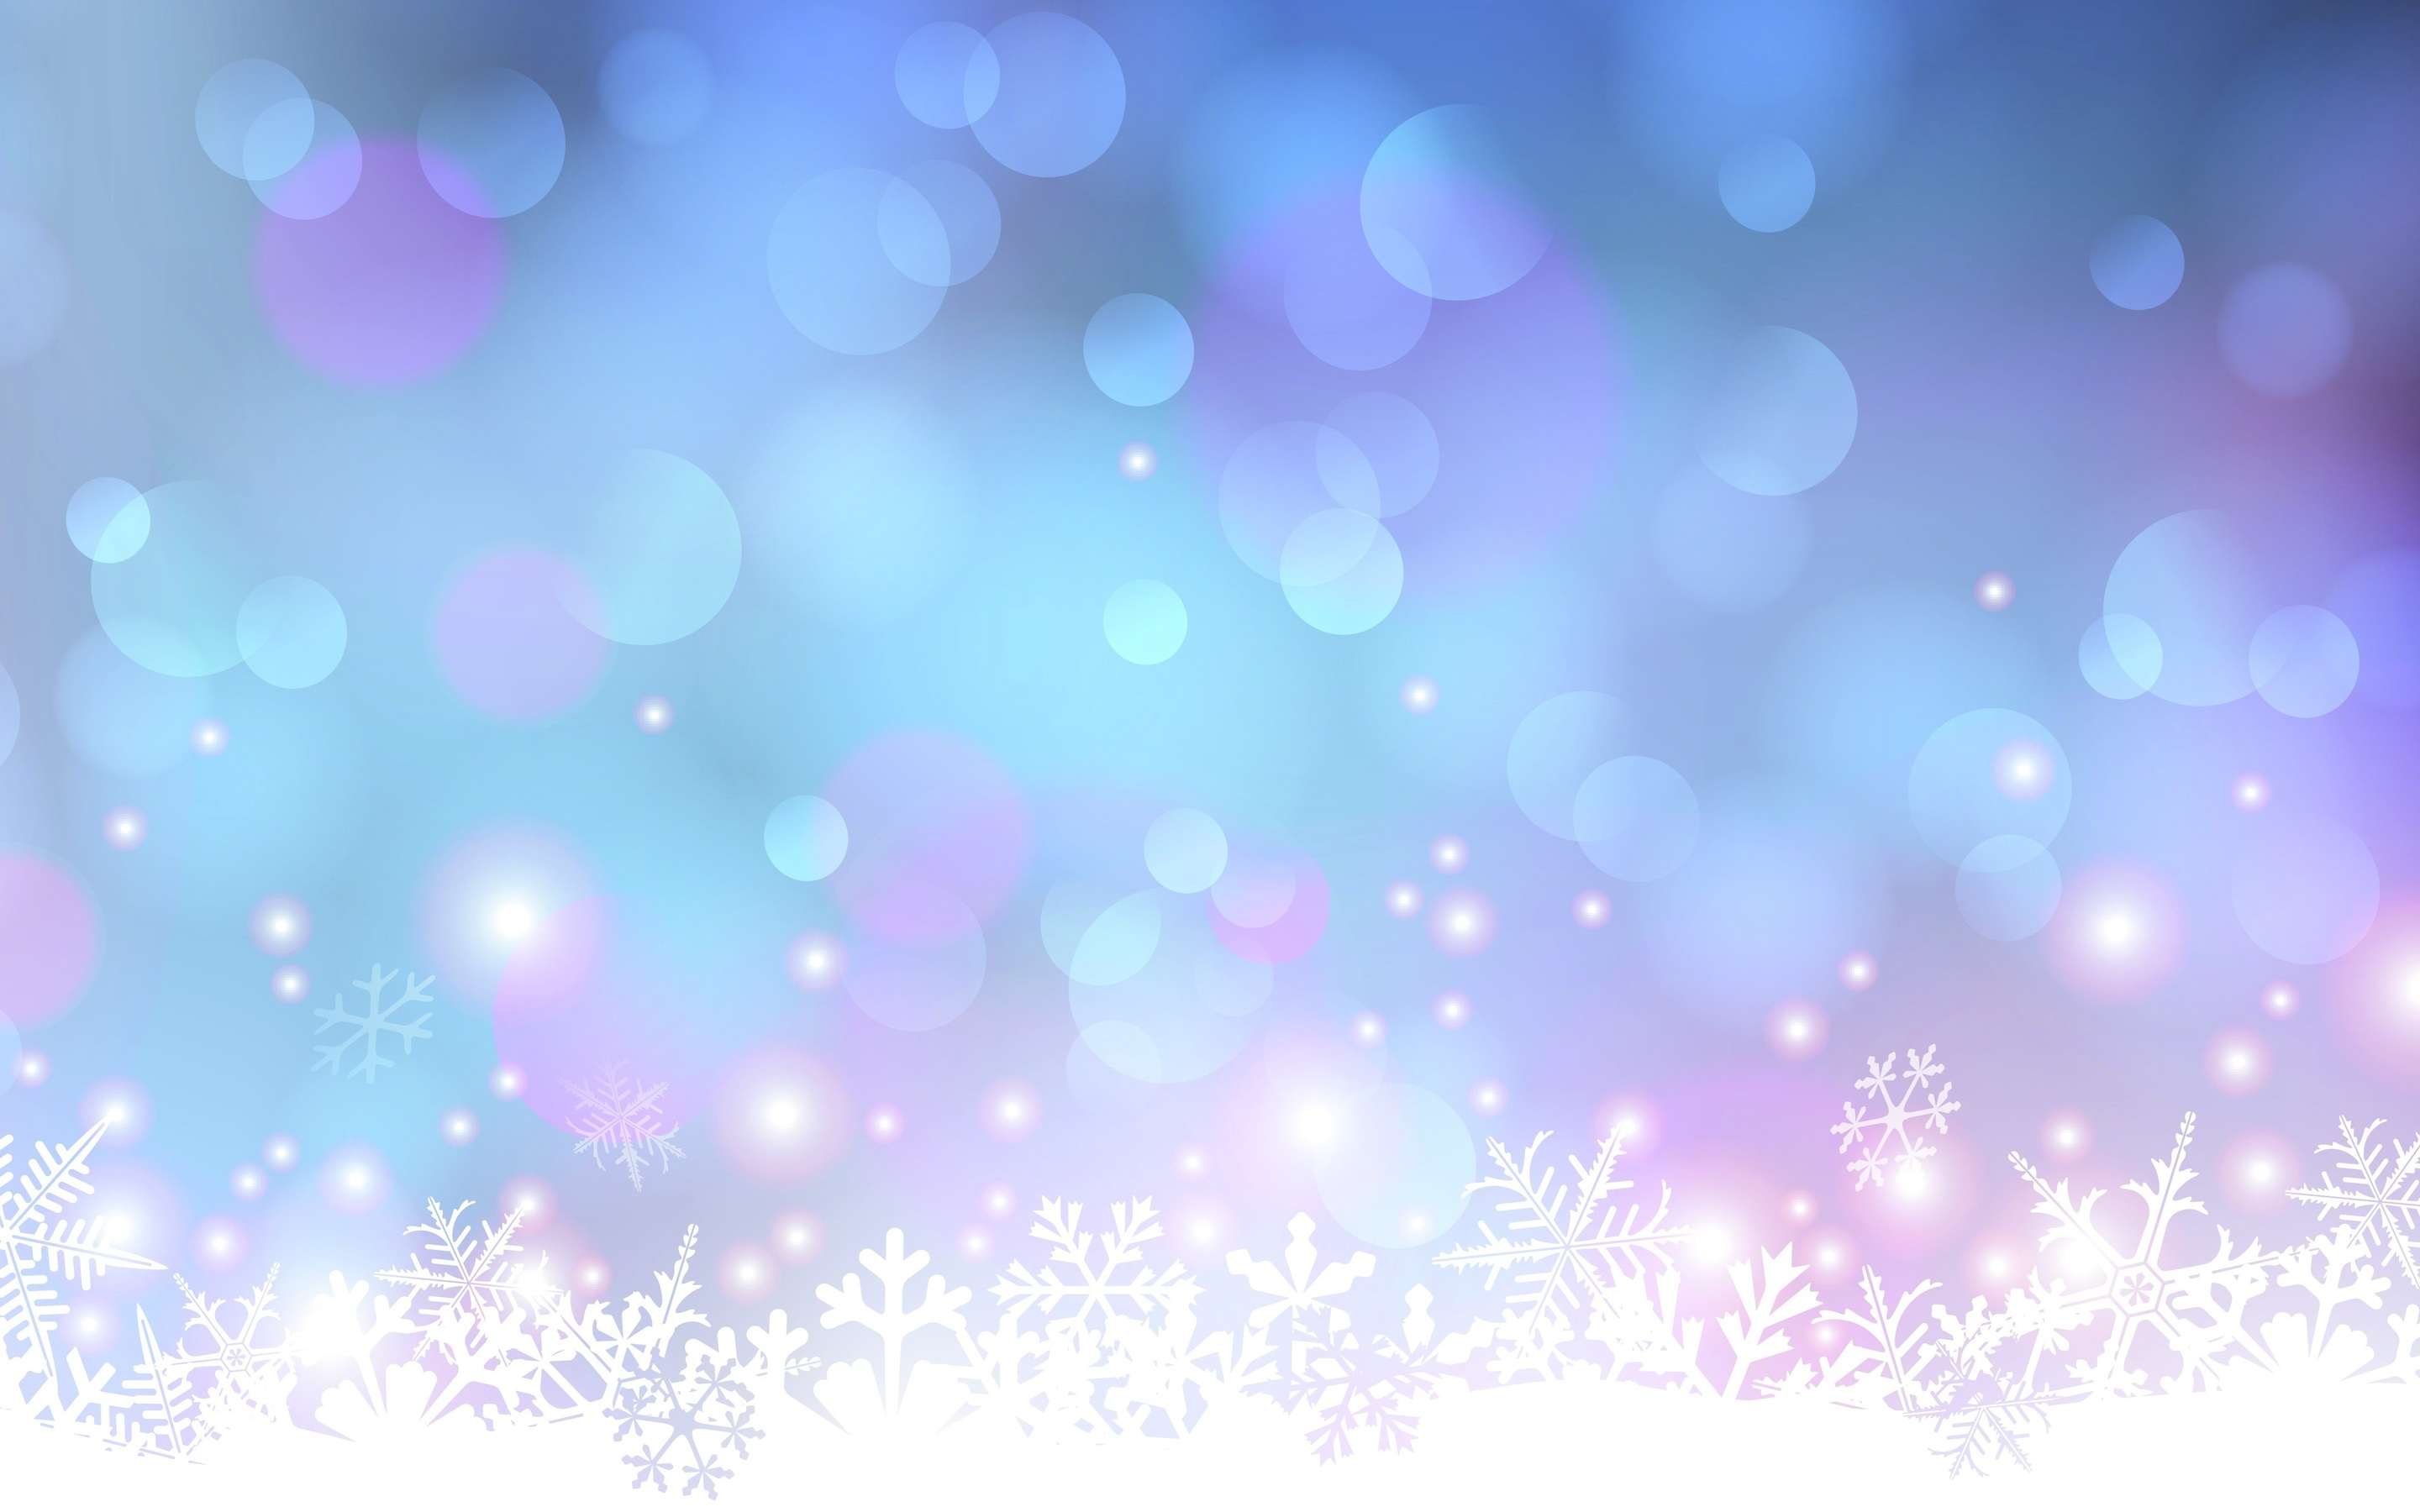 holiday desktop backgrounds photos top hd wallpapers freejpg 2880x1800